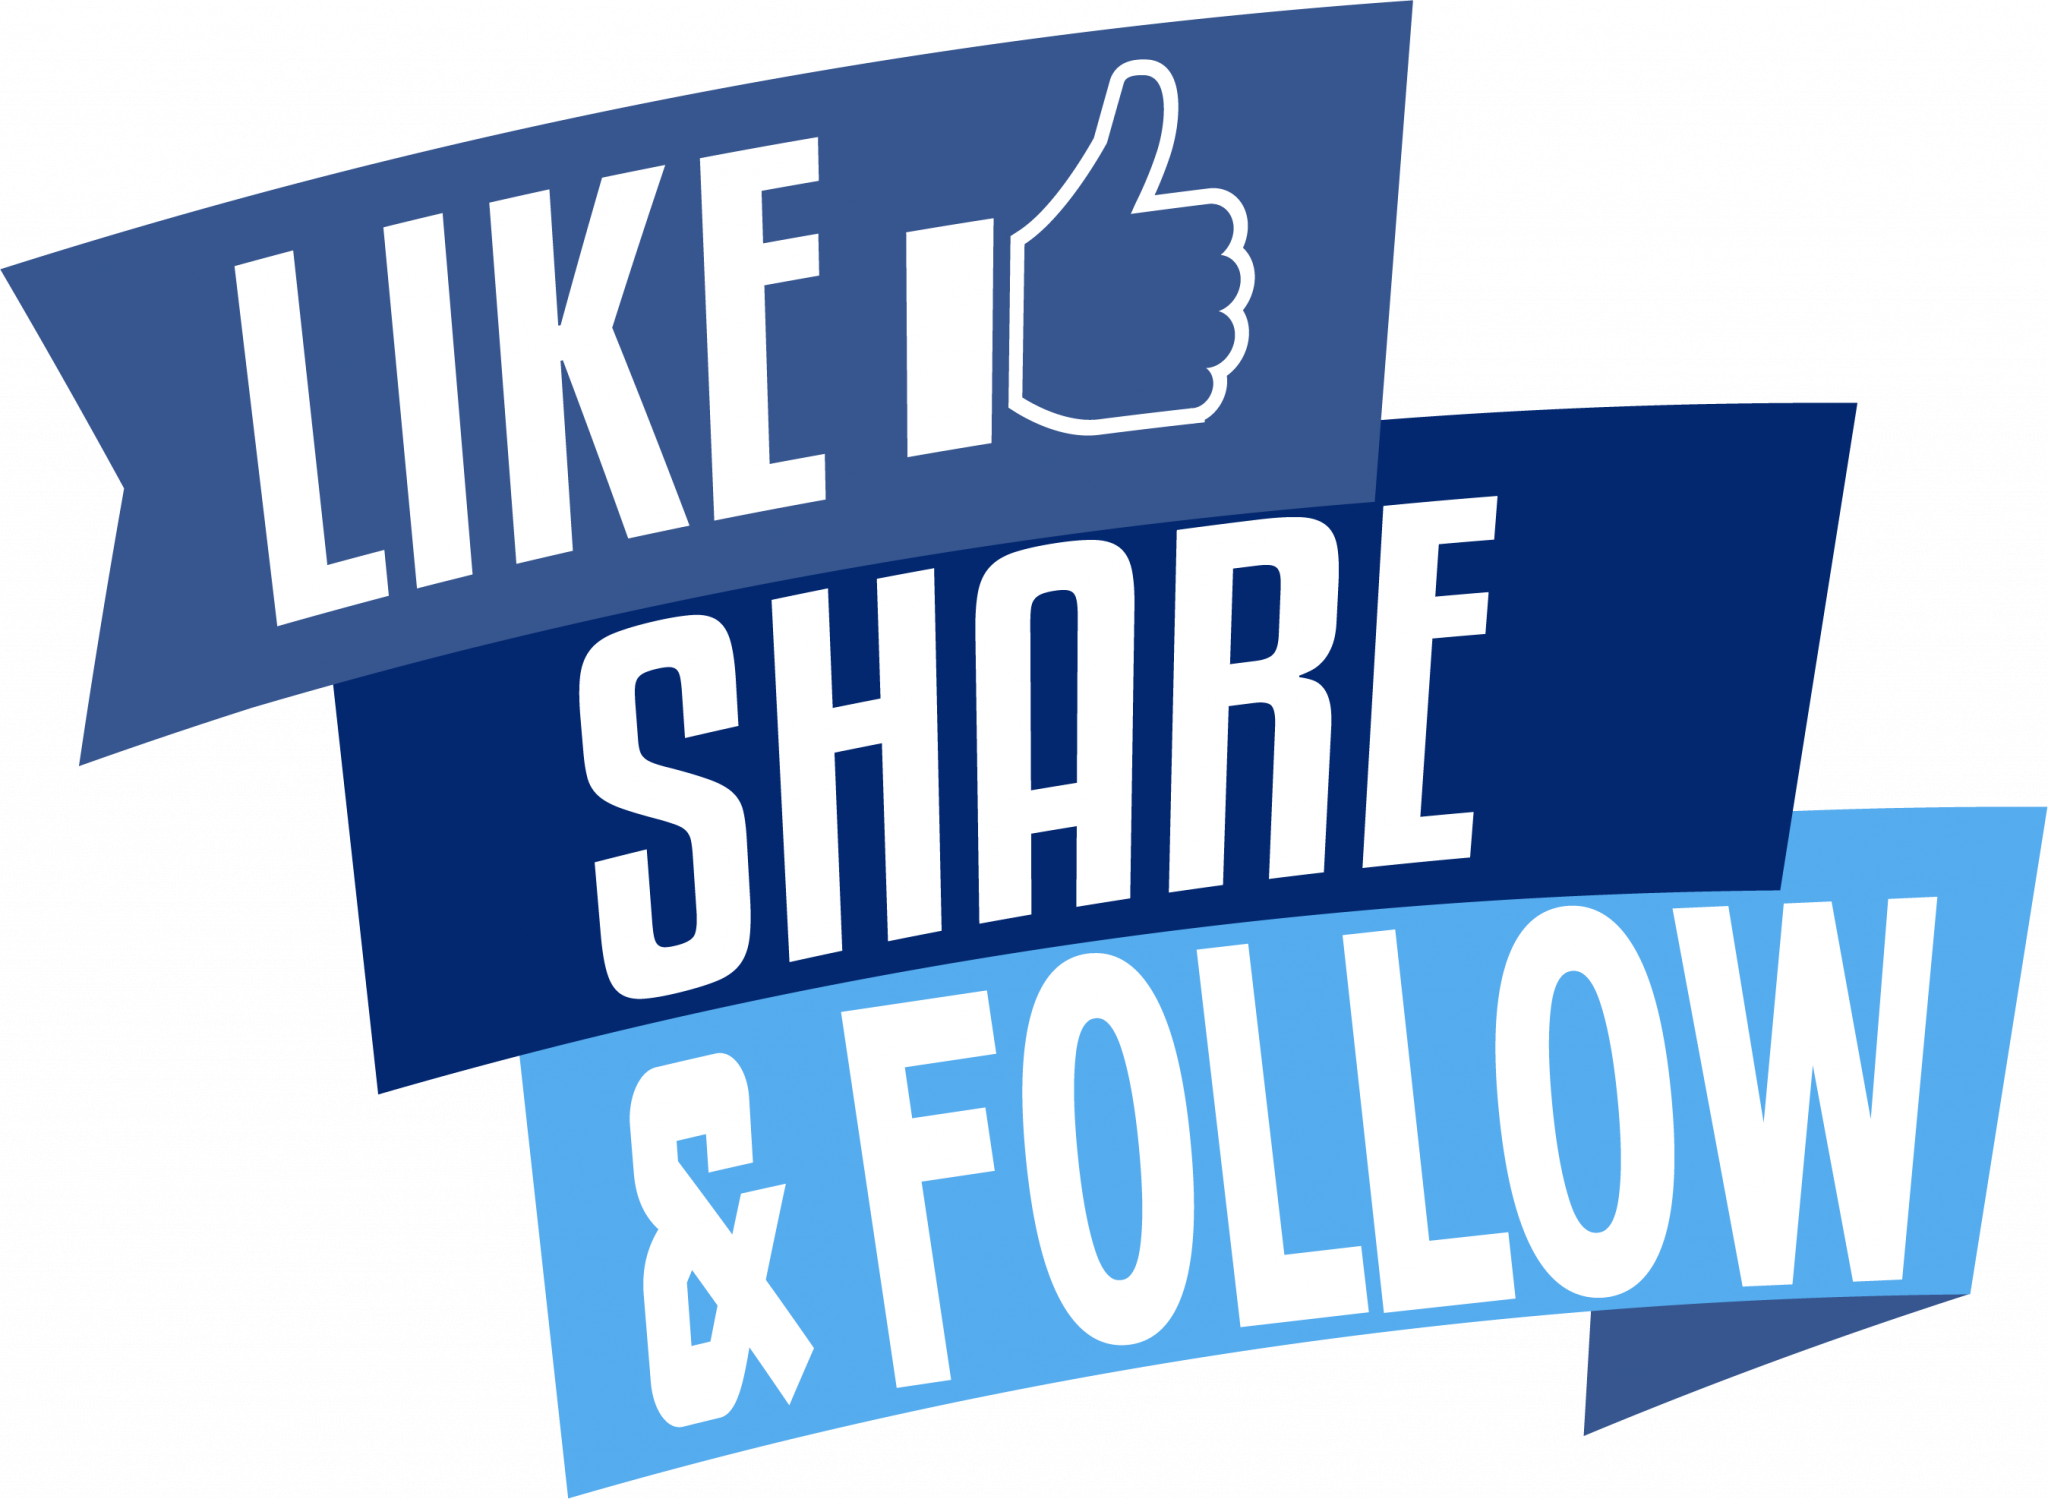 Like and share png. Facebook facelift rein follow